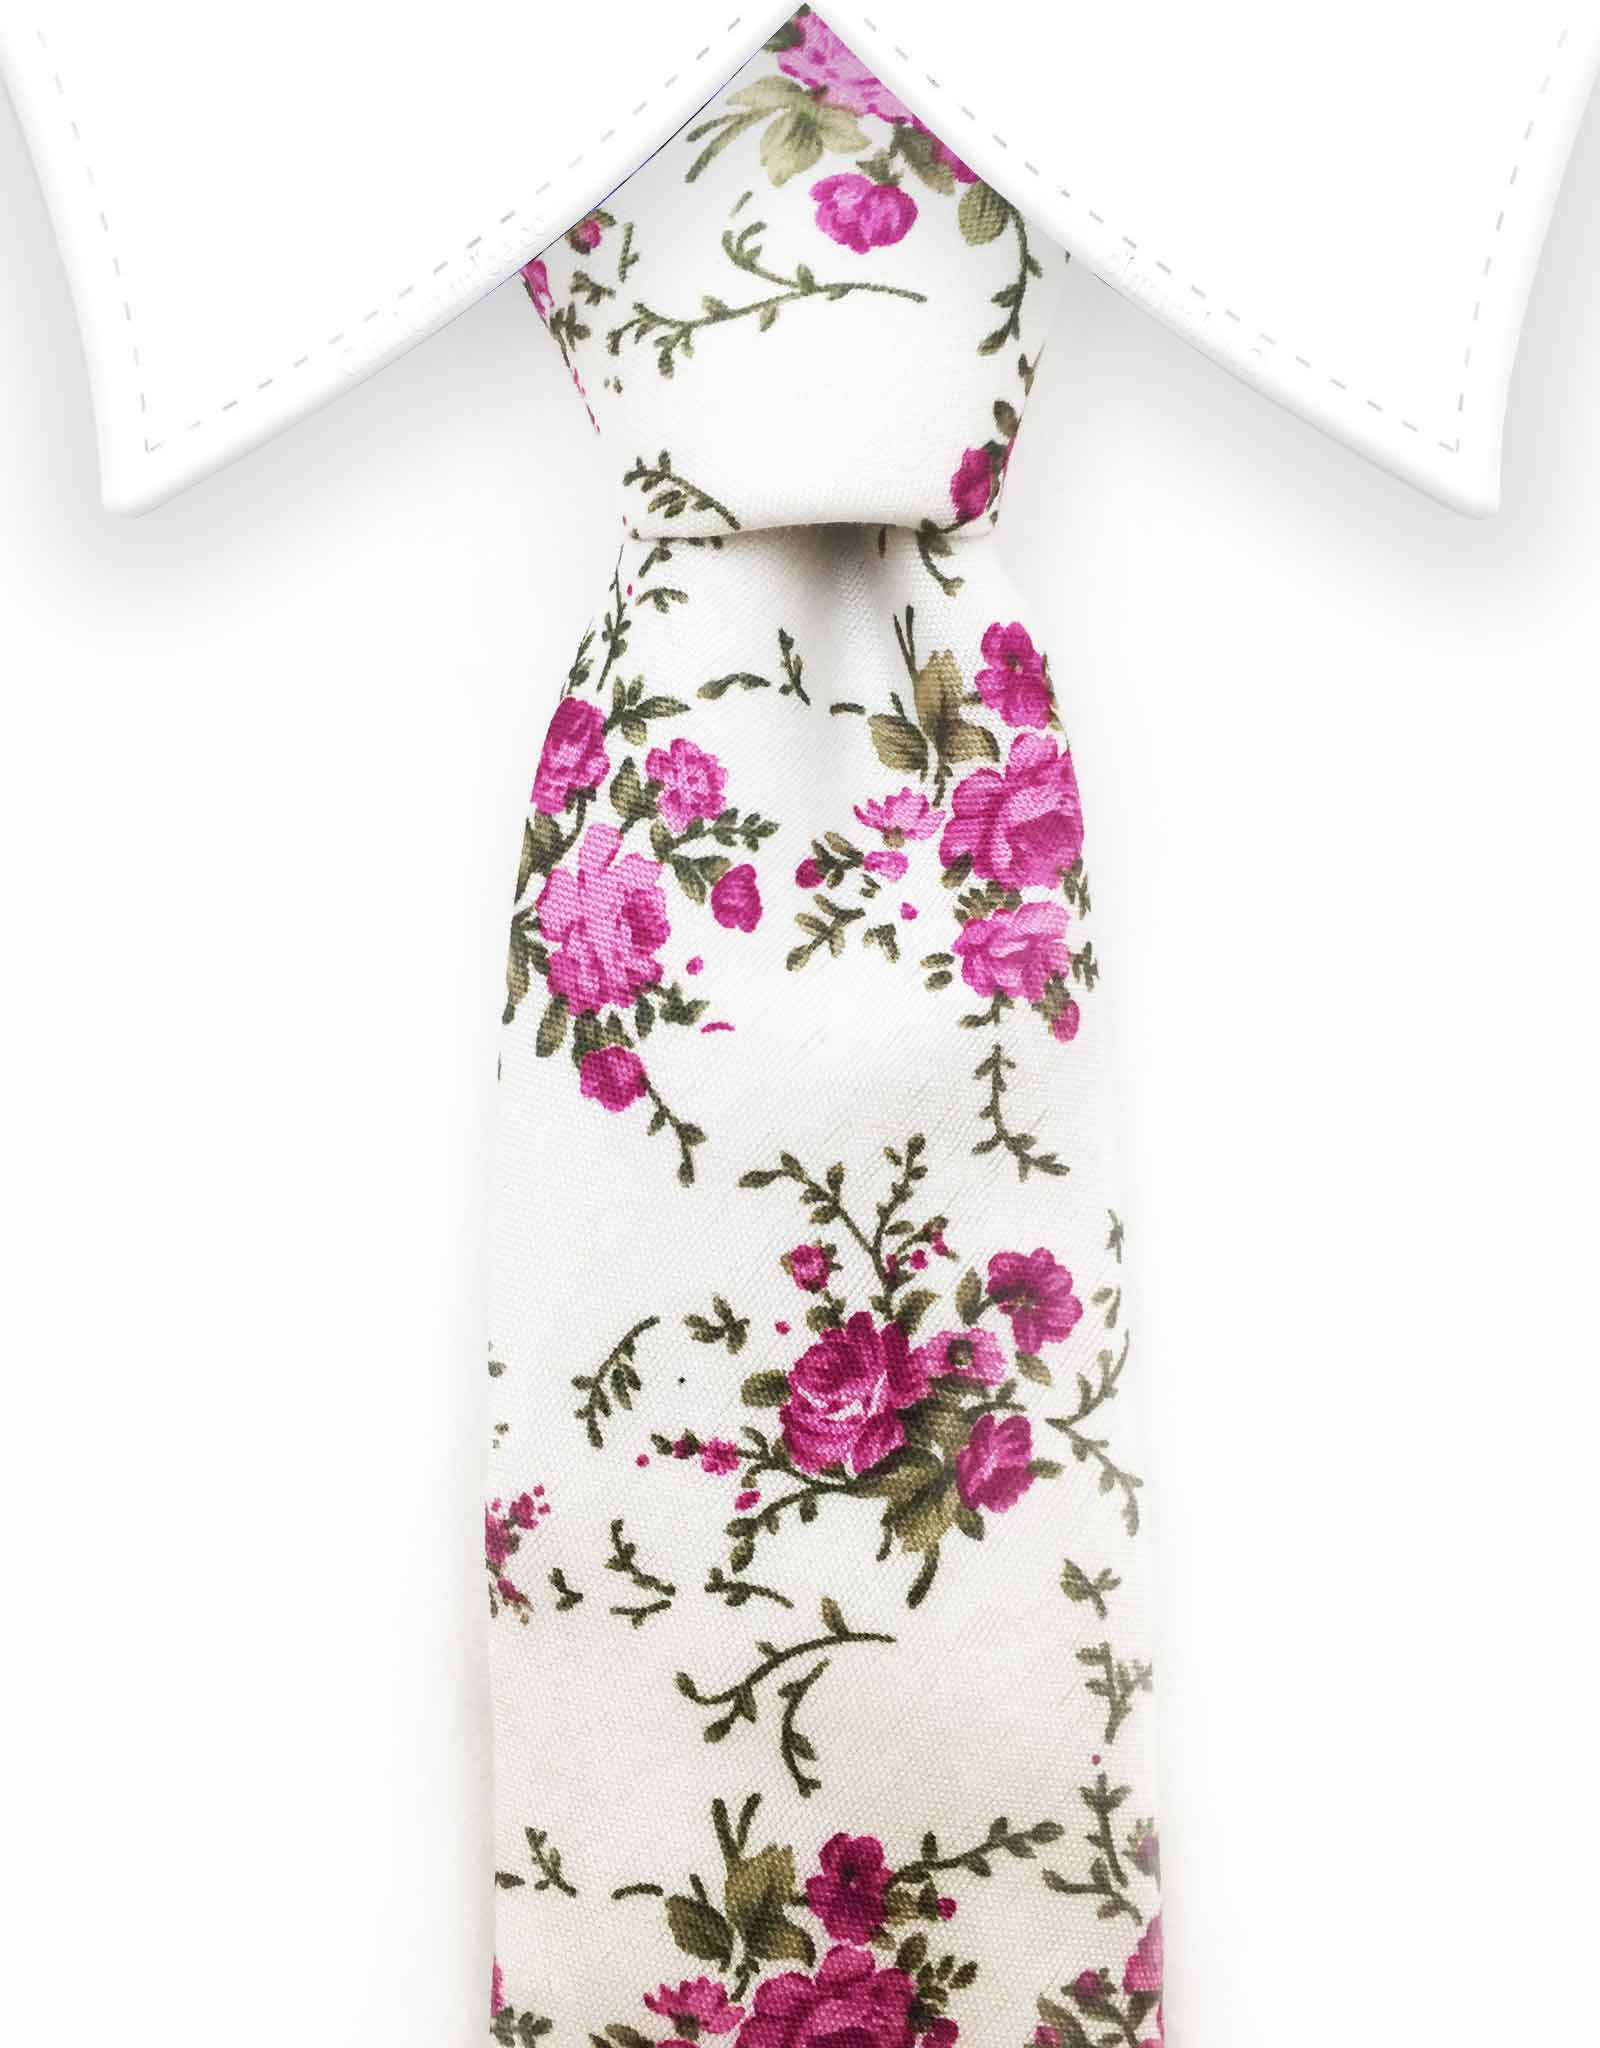 purple floral tie on white